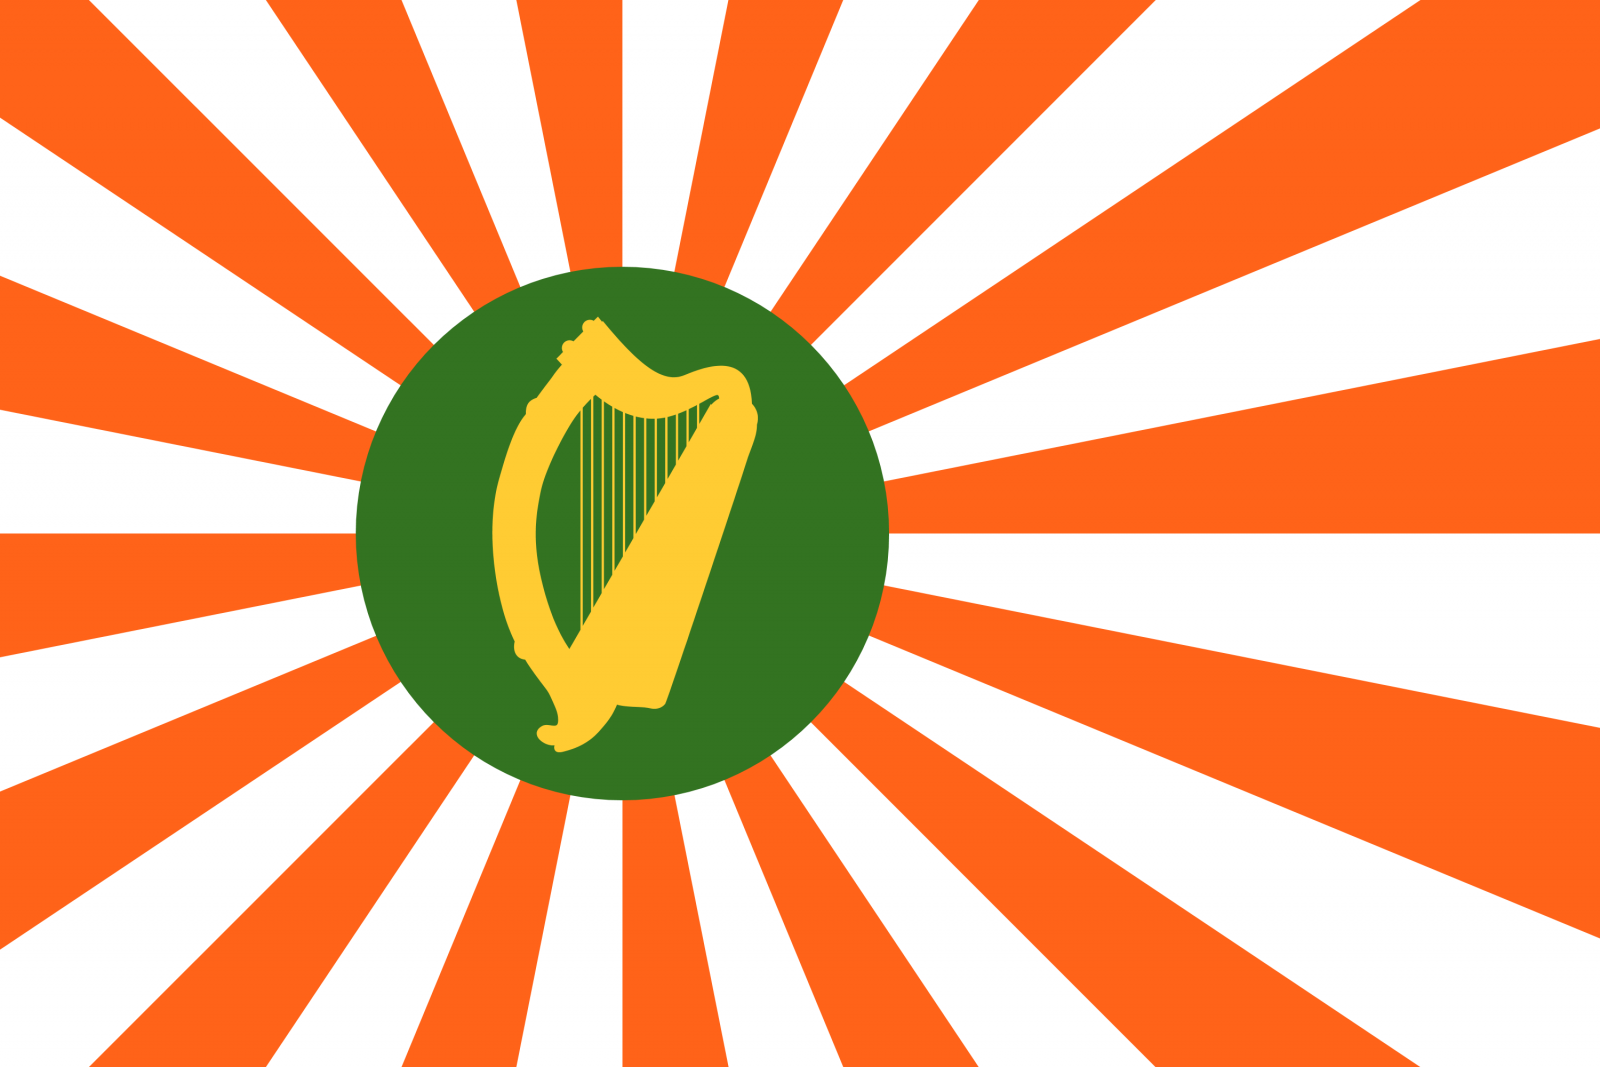 Canadian Mongolia, Russian Japan and Chinese Ireland: the alternative flags of East Asia